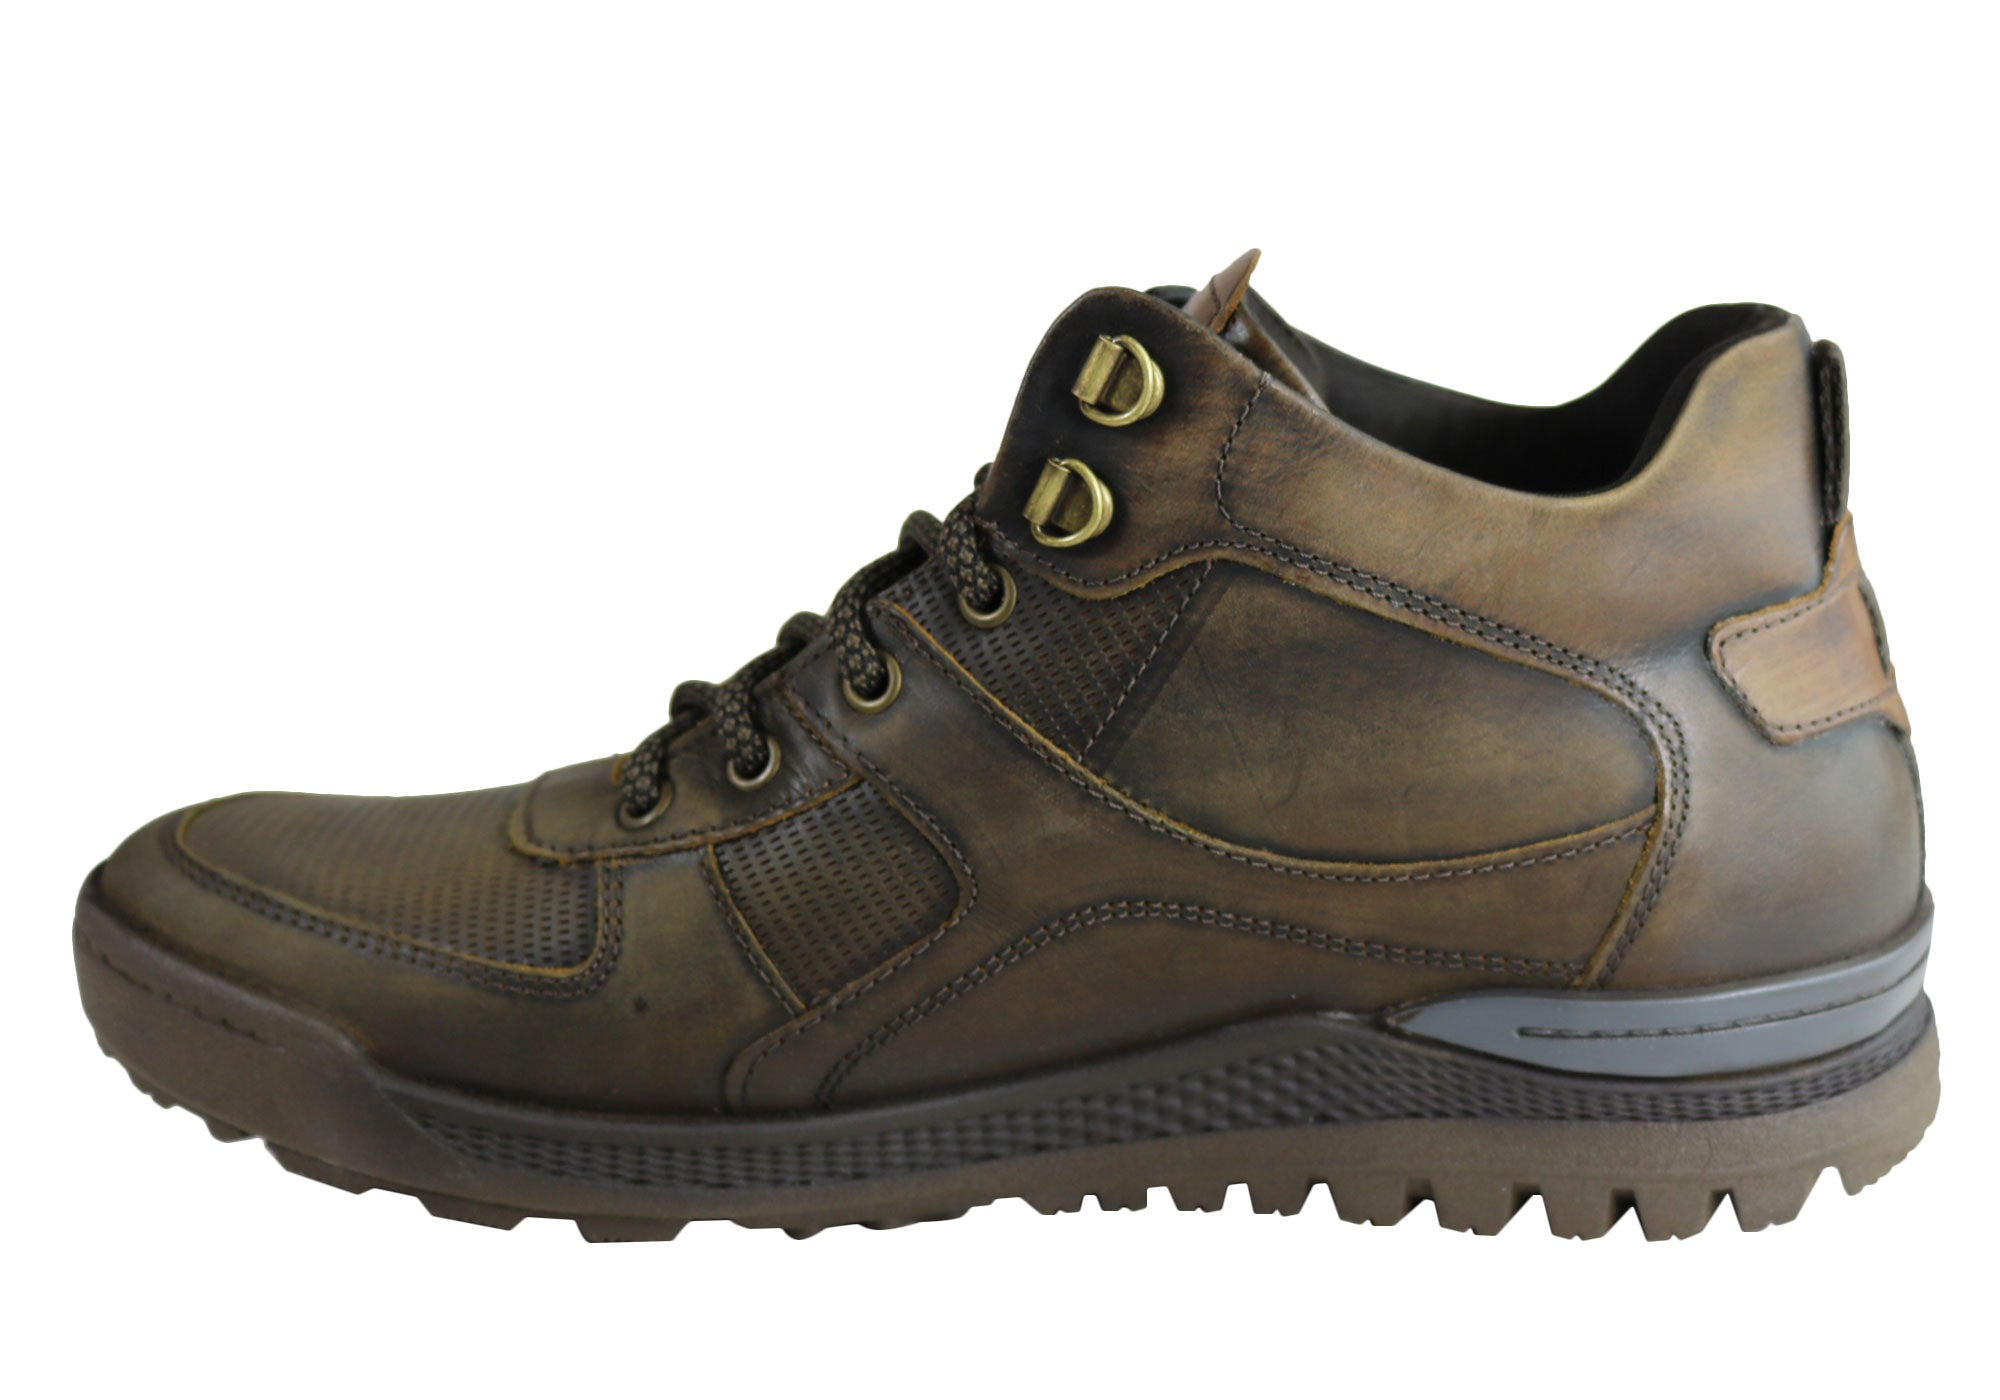 NEW-DEMOCRATA-DIEGO-MENS-LEATHER-LACE-UP-DRESS-BOOTS-MADE-IN-BRAZIL thumbnail 4